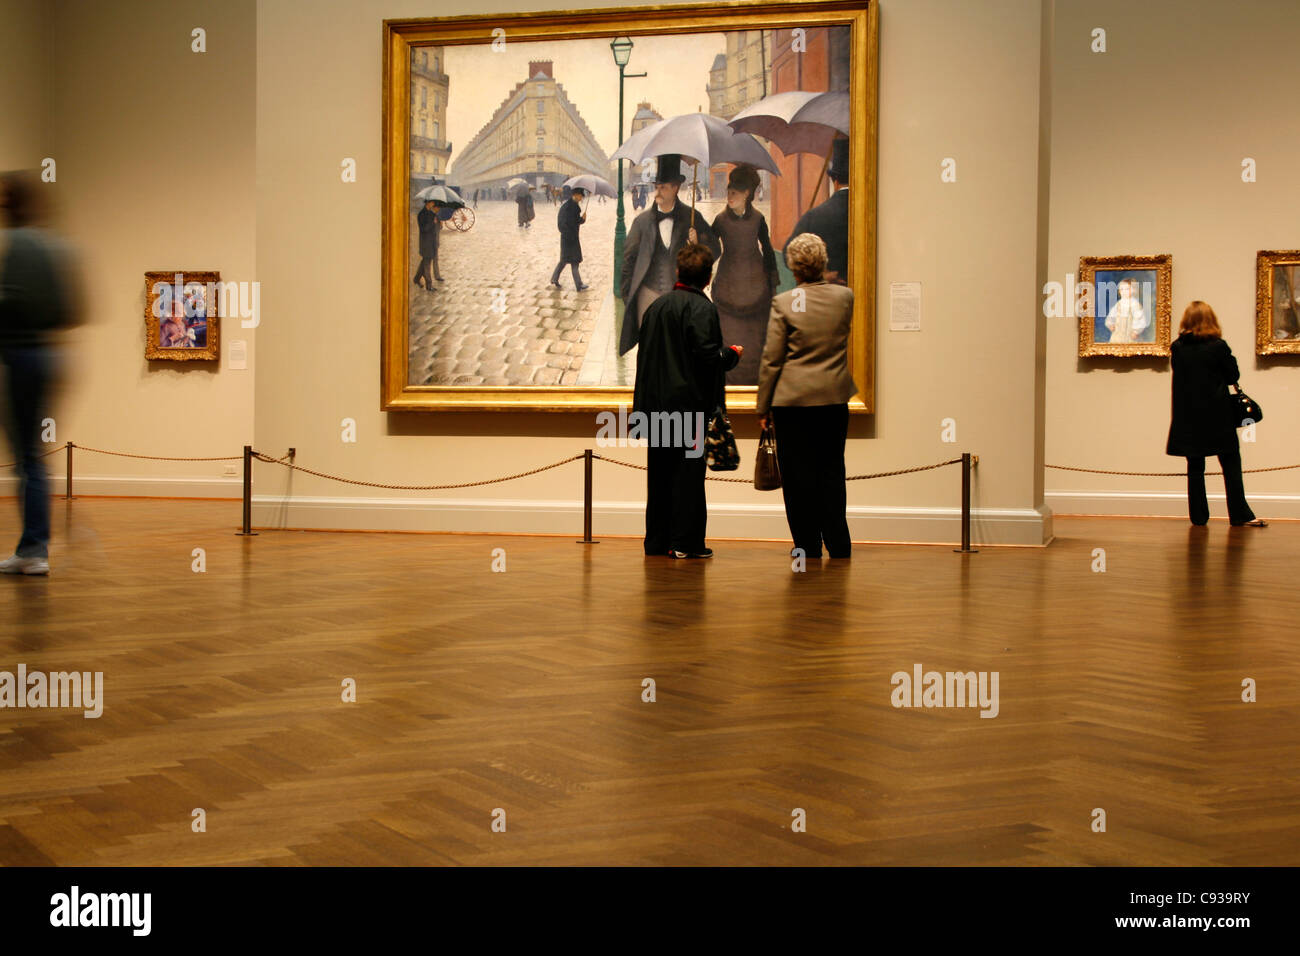 Visitors admiring the painting 'Jour de pluie à Paris' from Gustave Caillebotte in the Art Institute - Stock Image